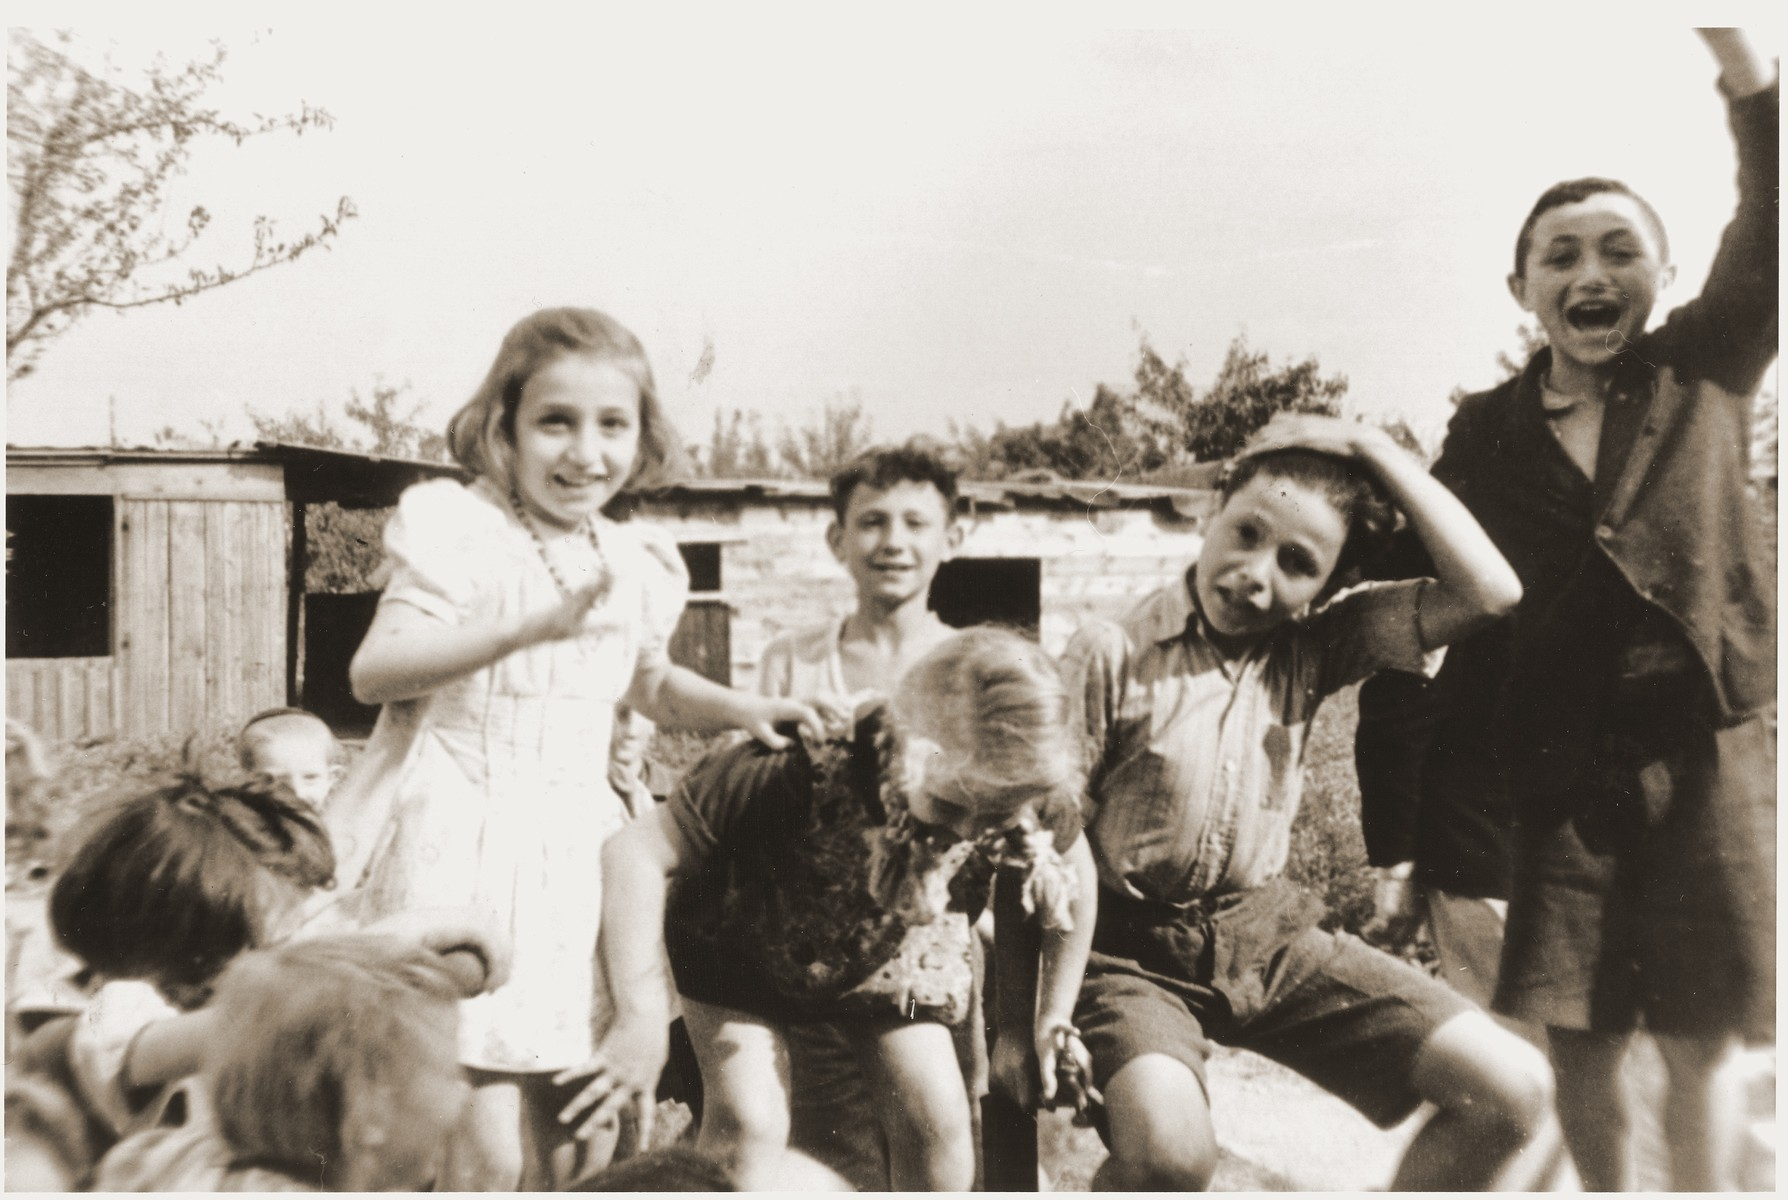 Children play outside in the Neu Freimann displaced persons camp.  Pictured on the far right is Nachman Aaron Elster.